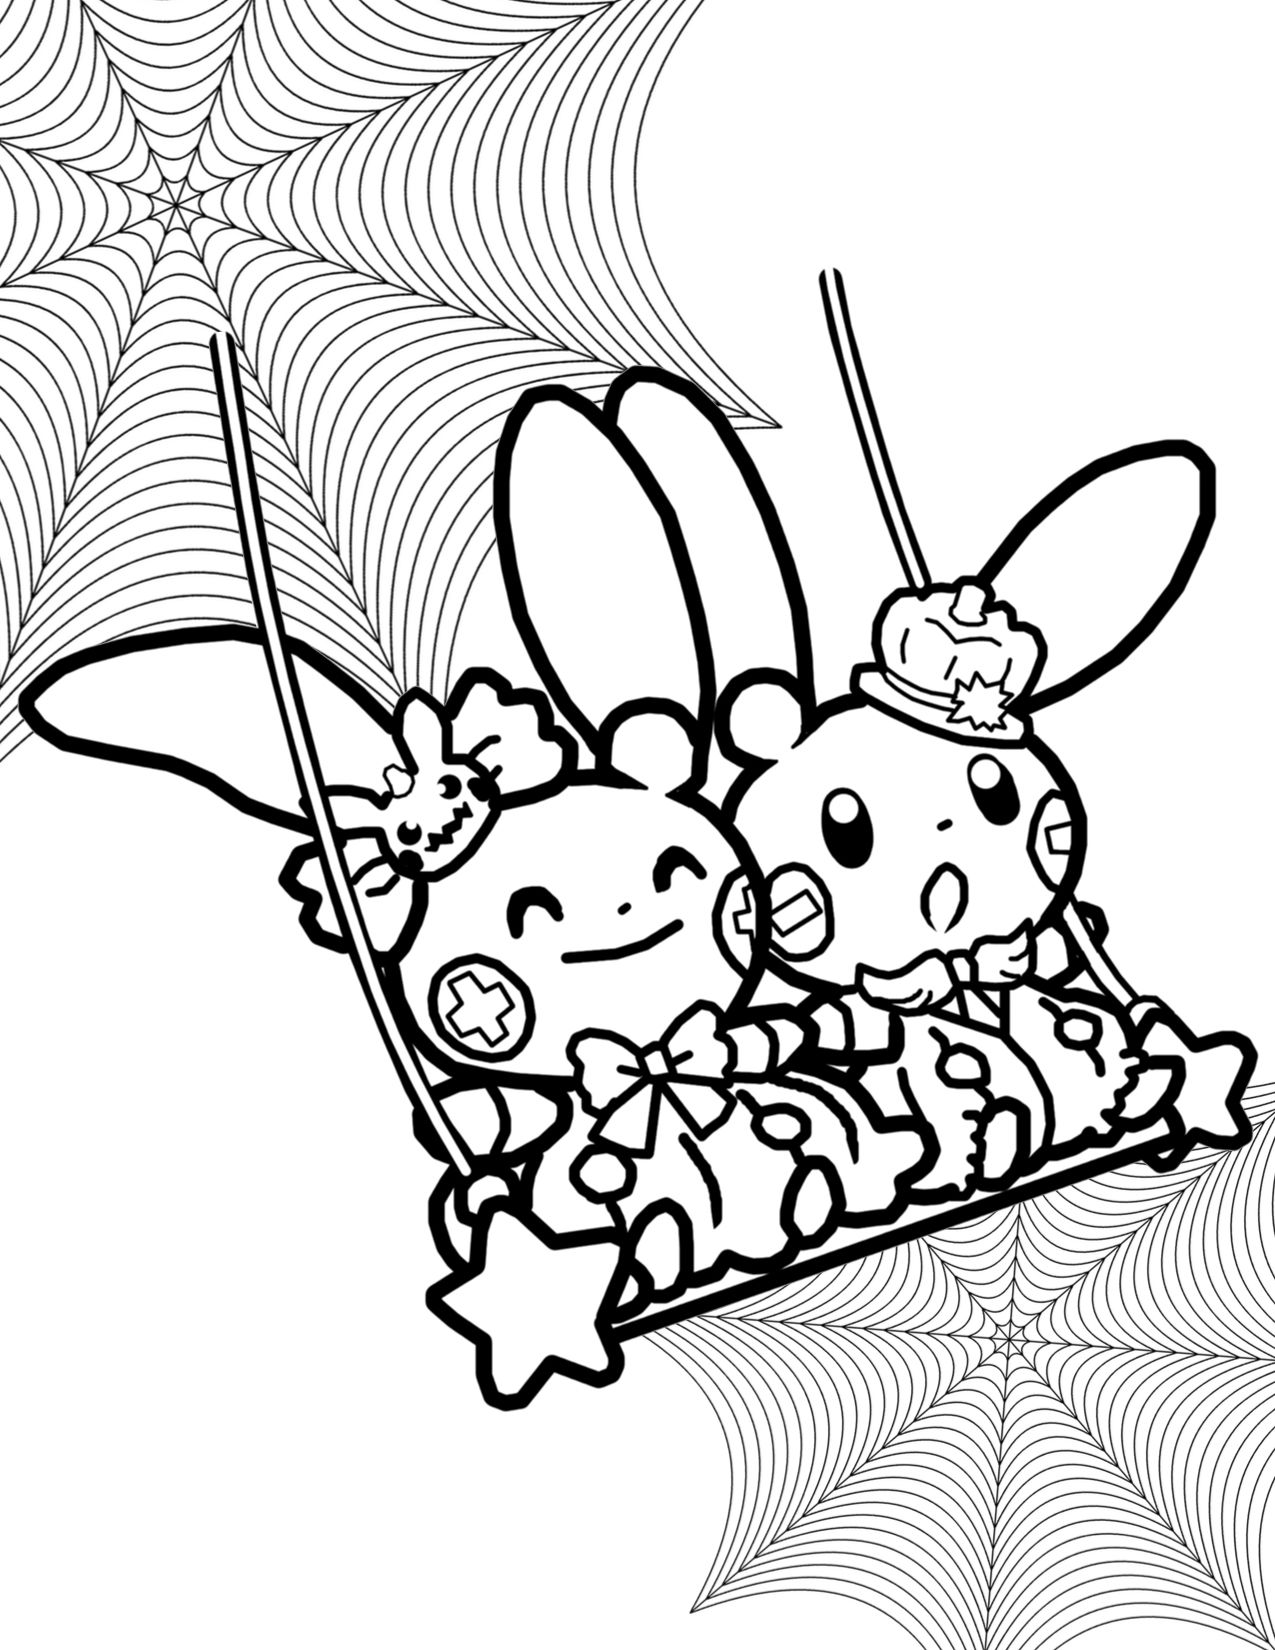 Beautiful Here Is The Last Of The Halloween Coloring Pages I Made! Have A Happy Safe